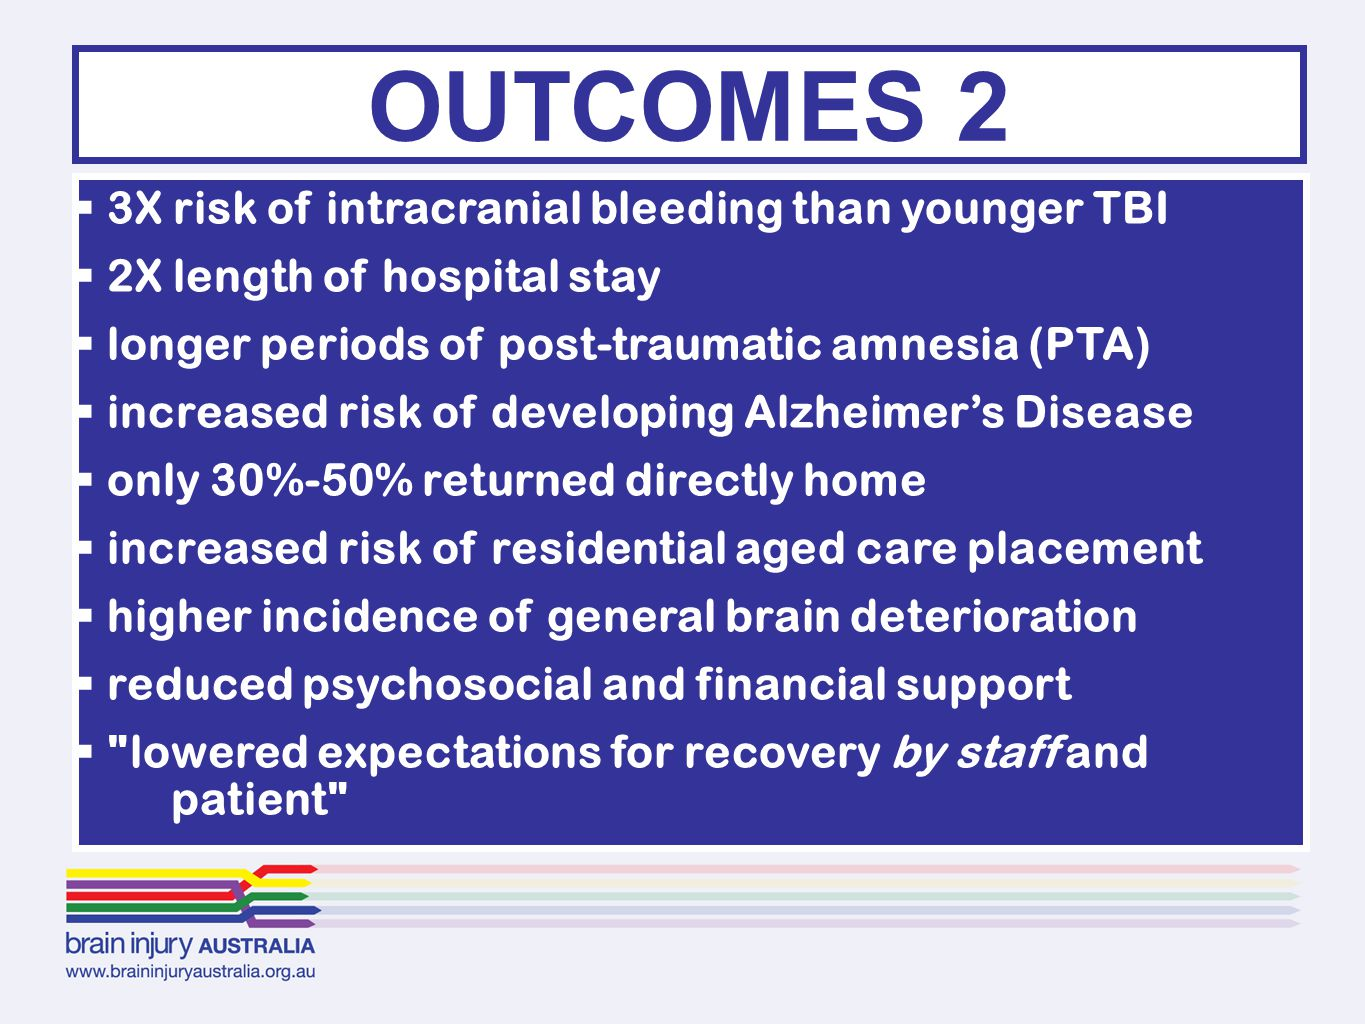  3X risk of intracranial bleeding than younger TBI  2X length of hospital stay  longer periods of post-traumatic amnesia (PTA)  increased risk of developing Alzheimer's Disease  only 30%-50% returned directly home  increased risk of residential aged care placement  higher incidence of general brain deterioration  reduced psychosocial and financial support  lowered expectations for recovery by staff and patient OUTCOMES 2